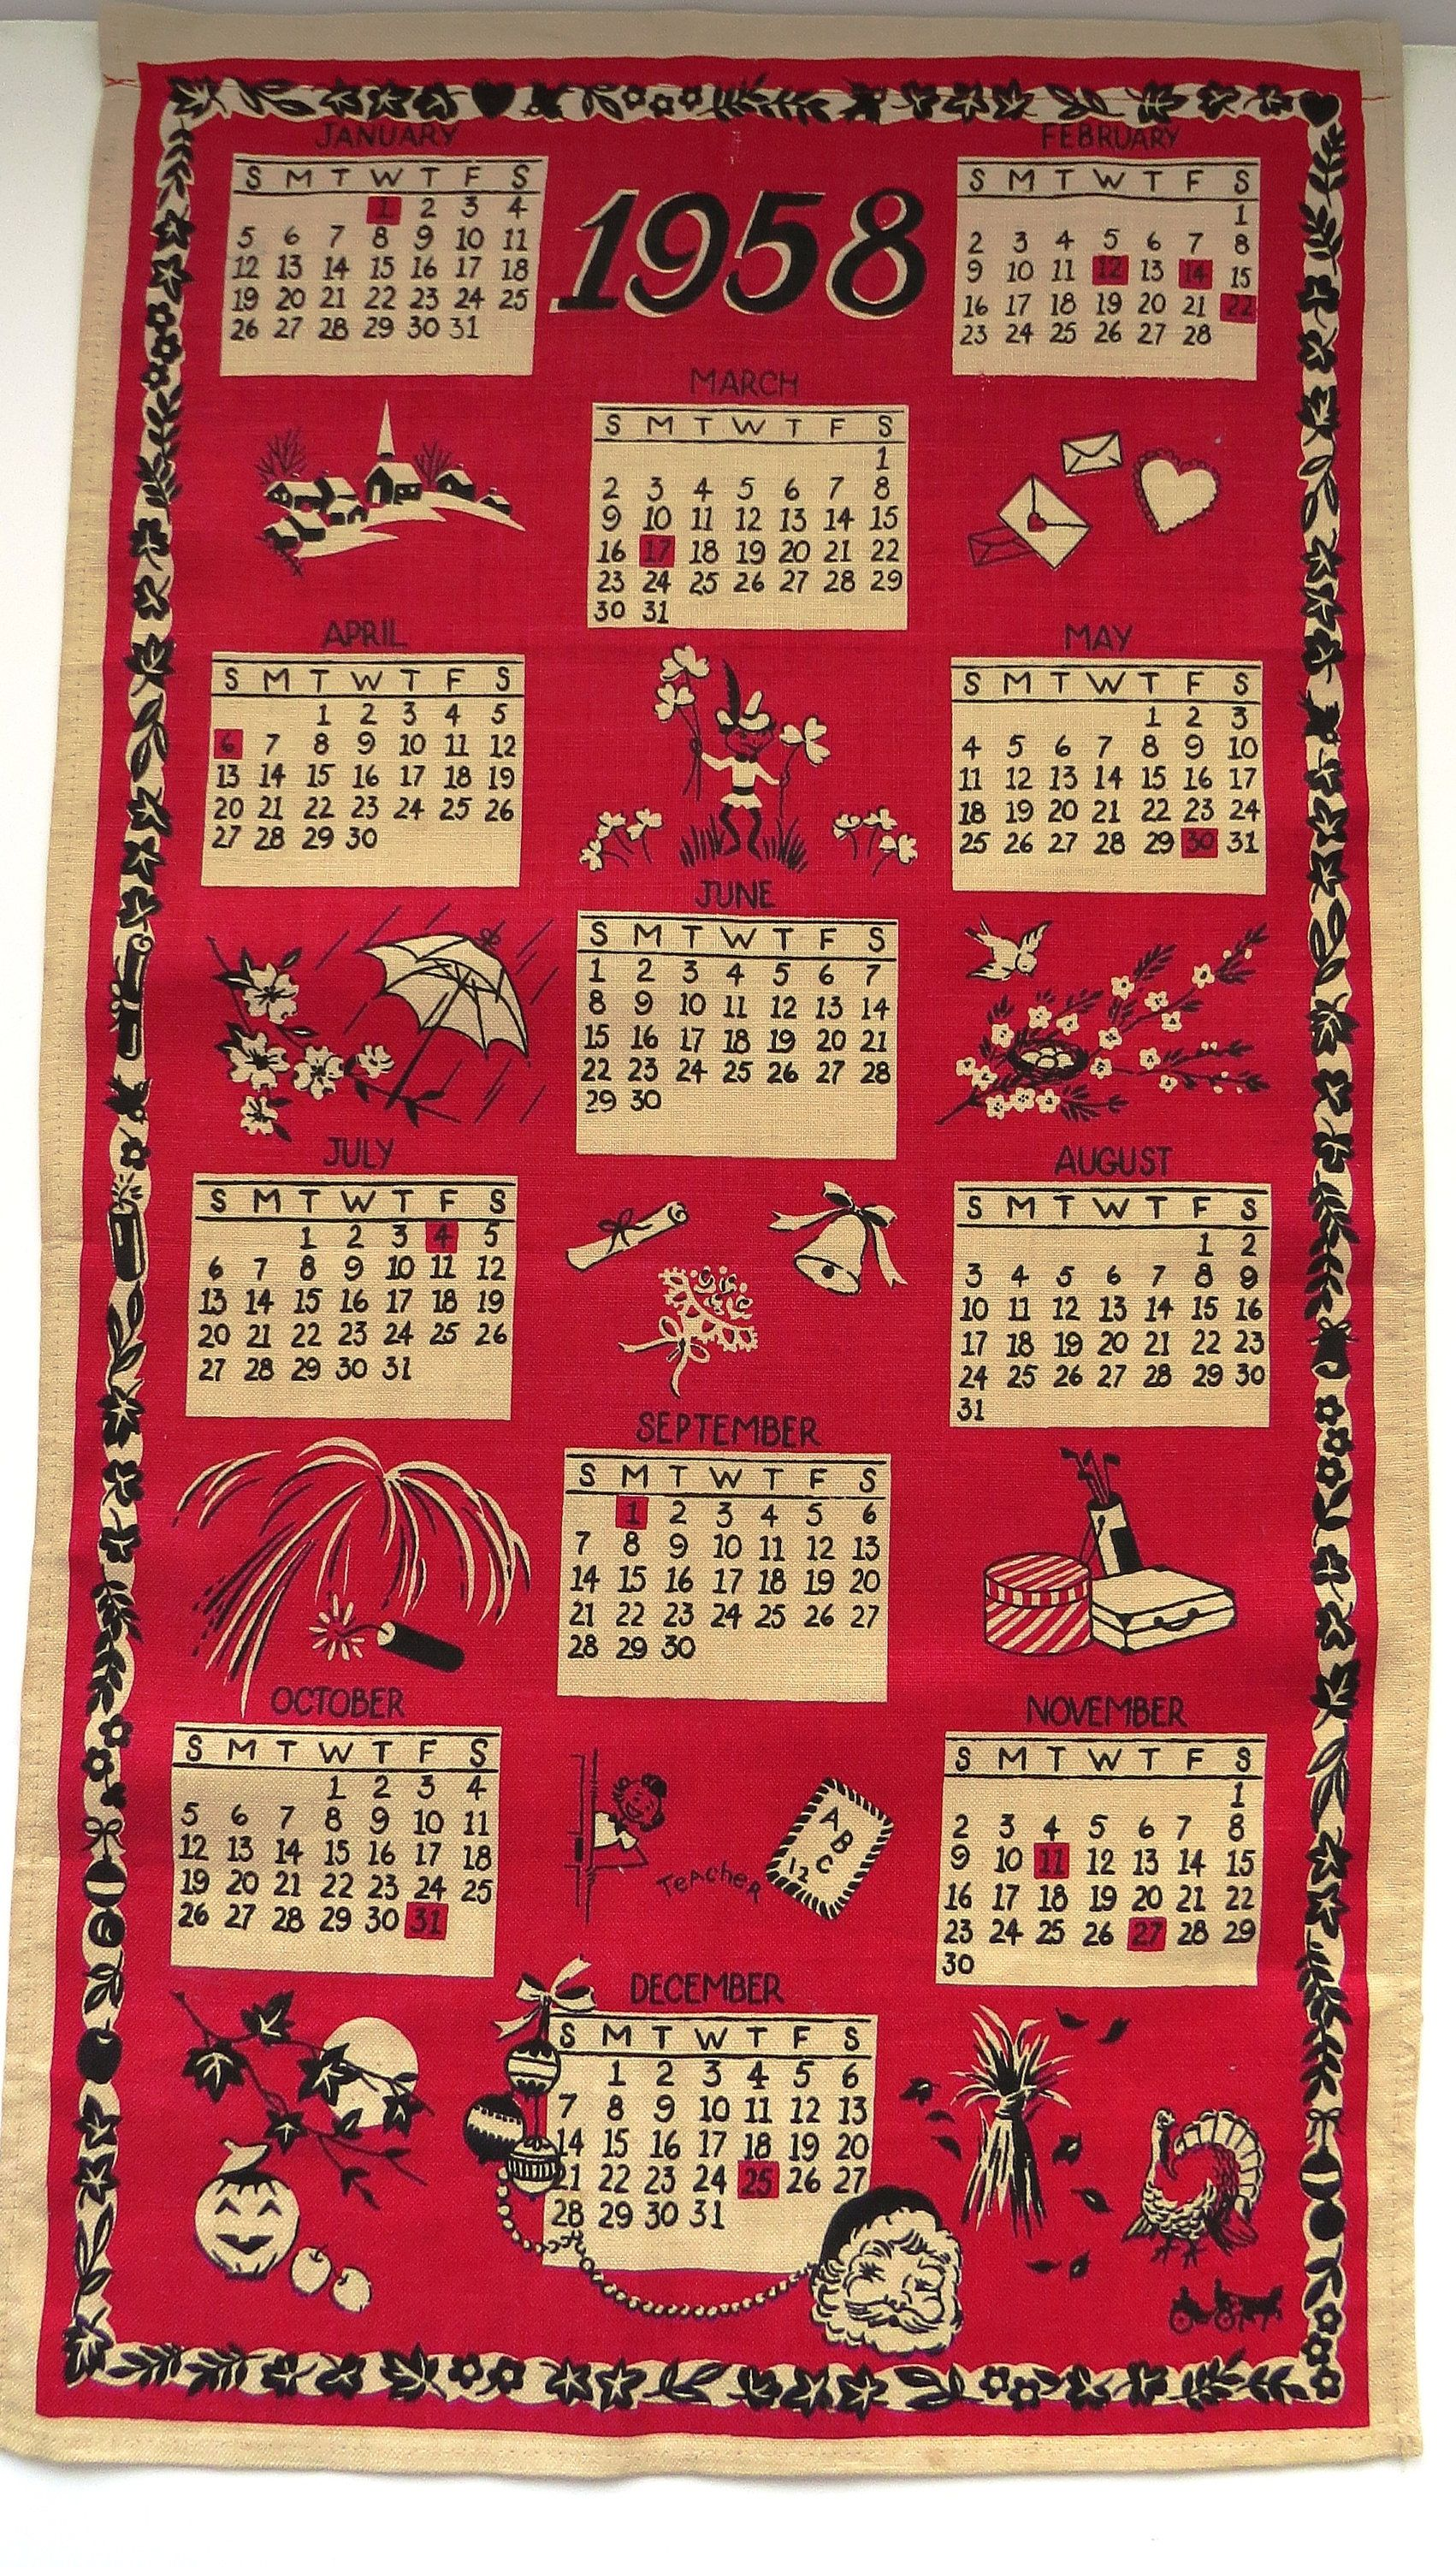 1958 Calendar Kitchen Towel Wall Hanging By Town U0026 Country   Seasonal  Graphics   Red White